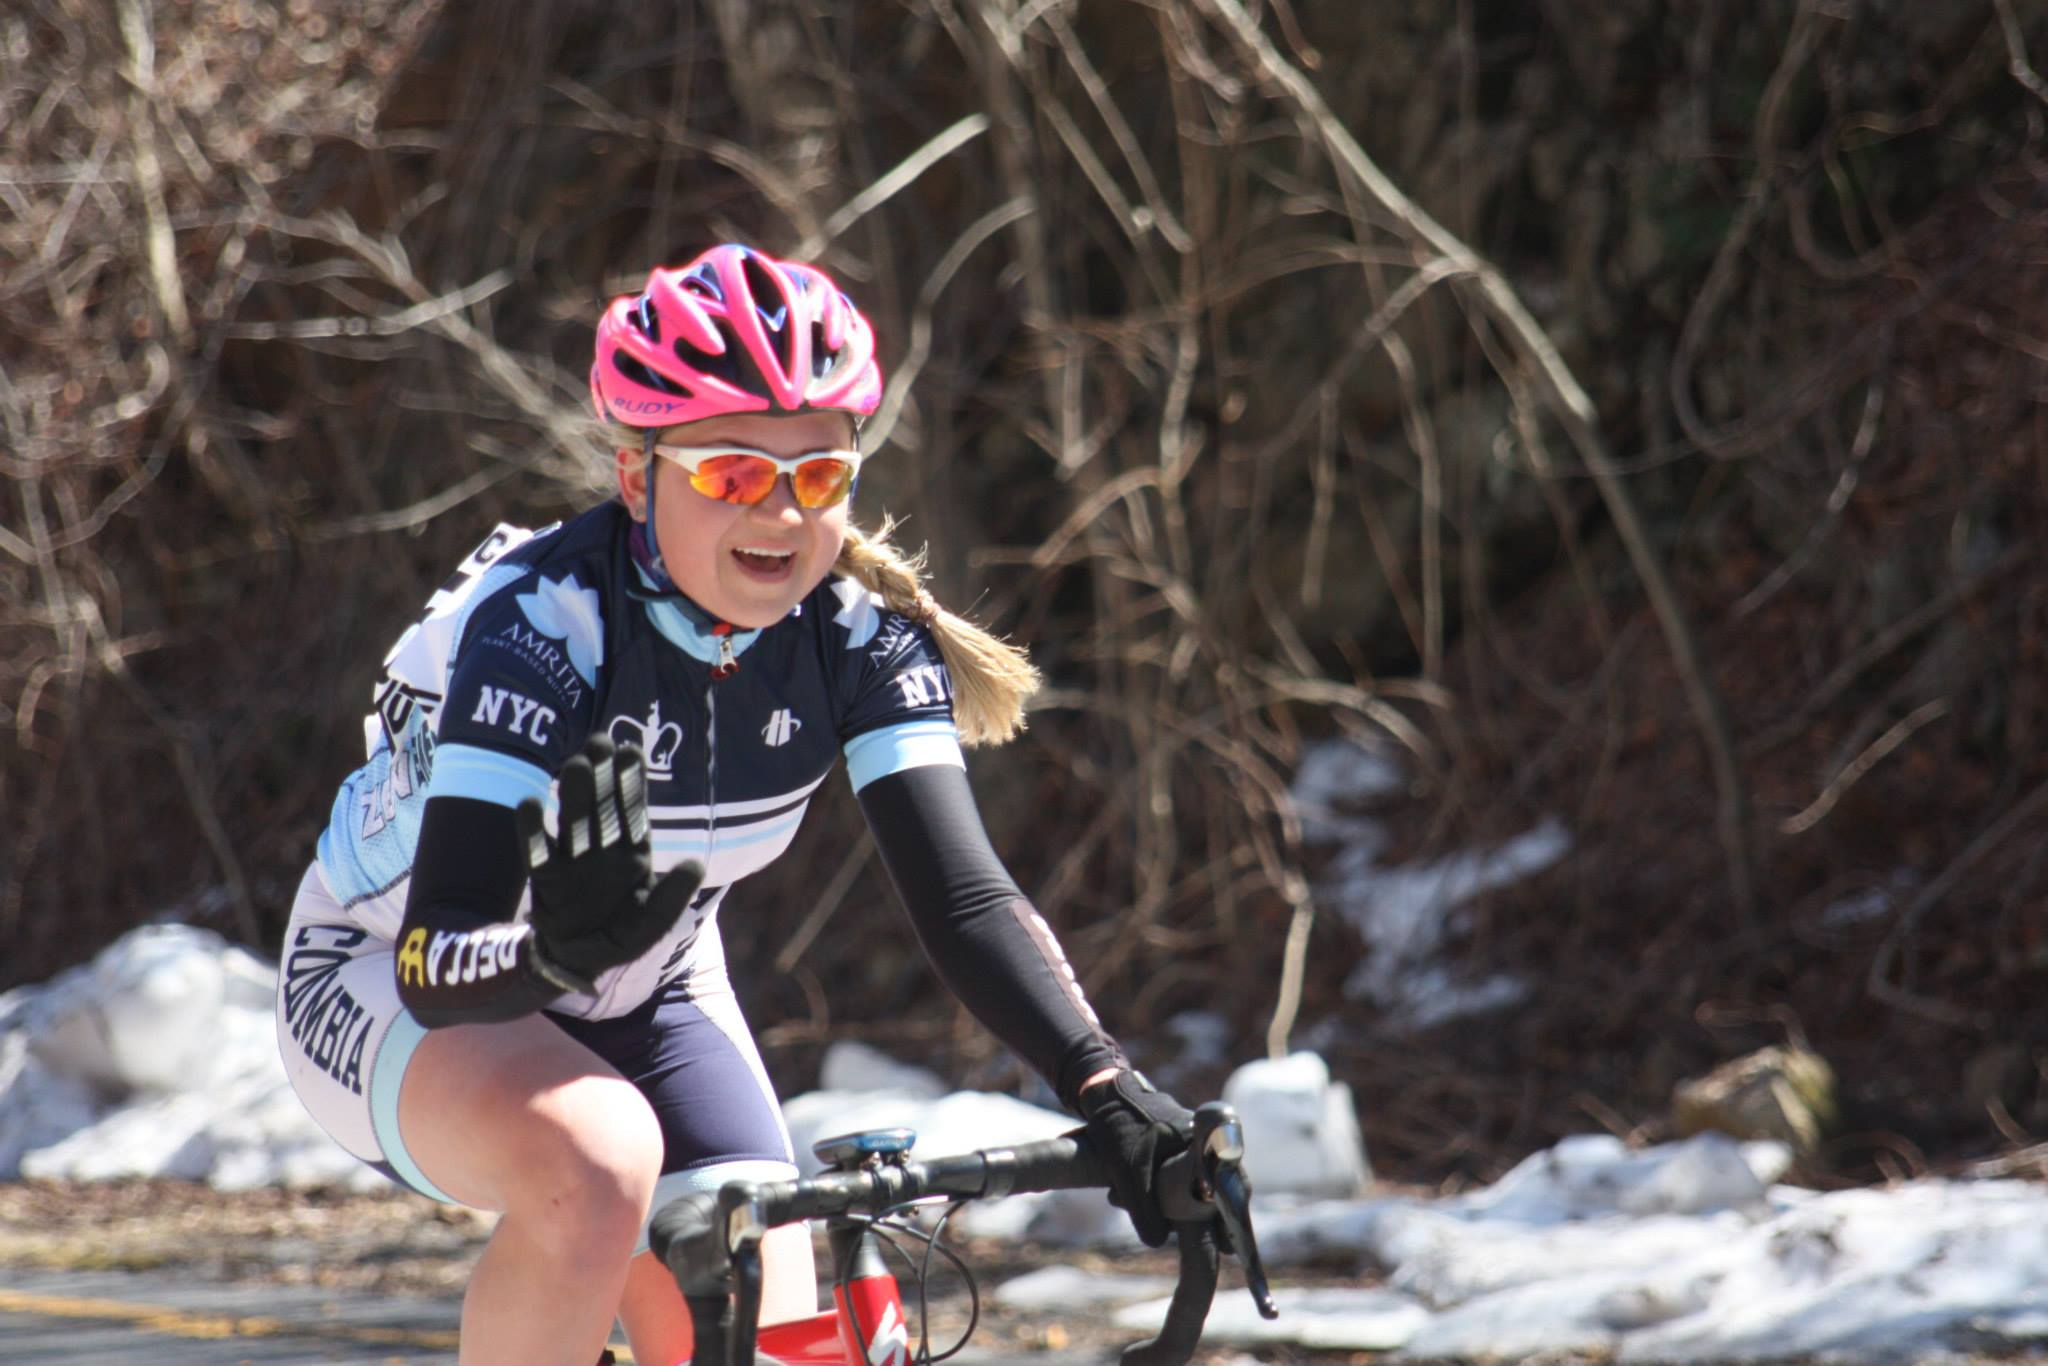 Anastasia yanchilina     Hometown: Moscow, Russia   Favorite Ride: Asheville Road Race   Racing Since: 2011   Competes in: Women's A